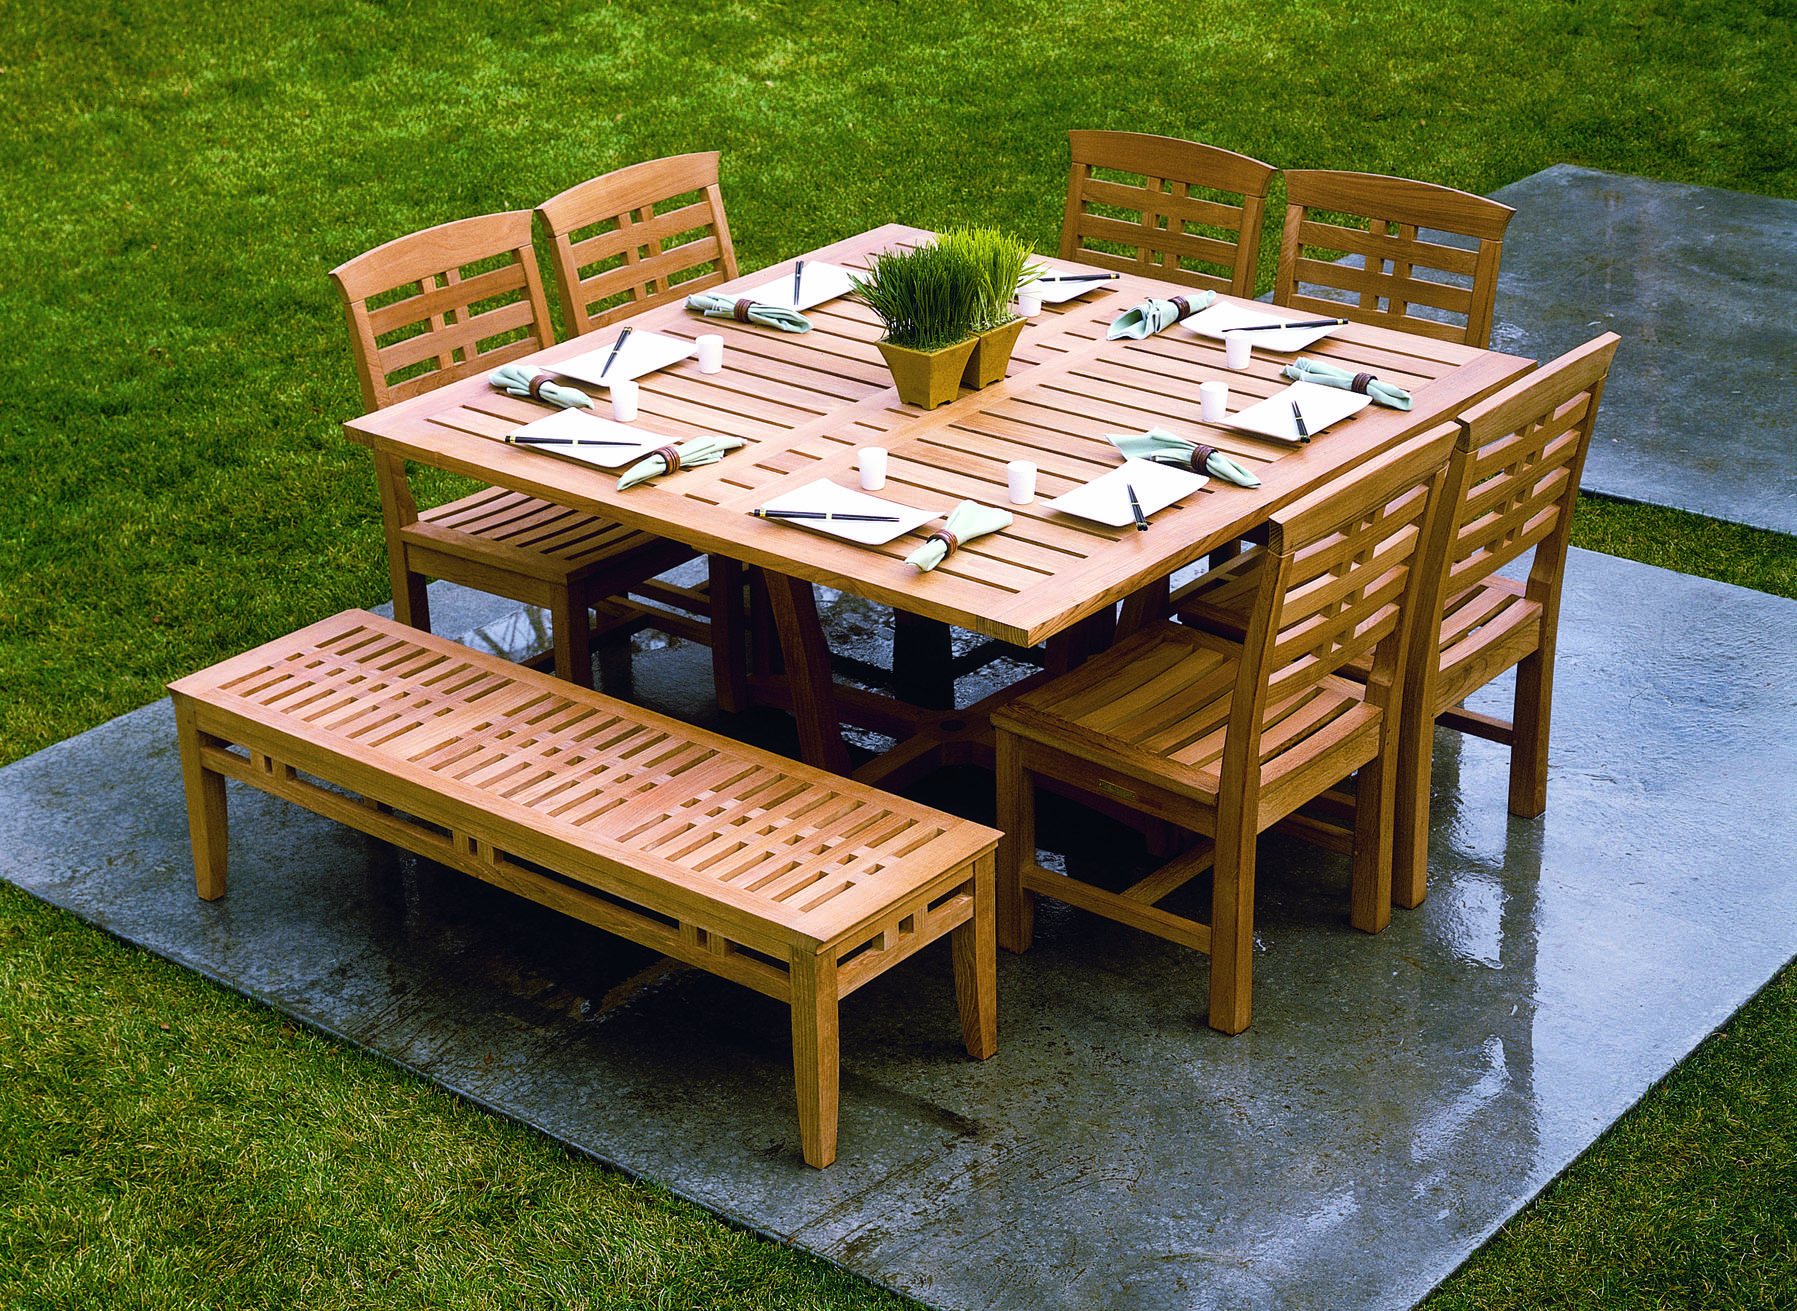 Pettis pools patio shares top patio furniture materials for Best outdoor furniture material